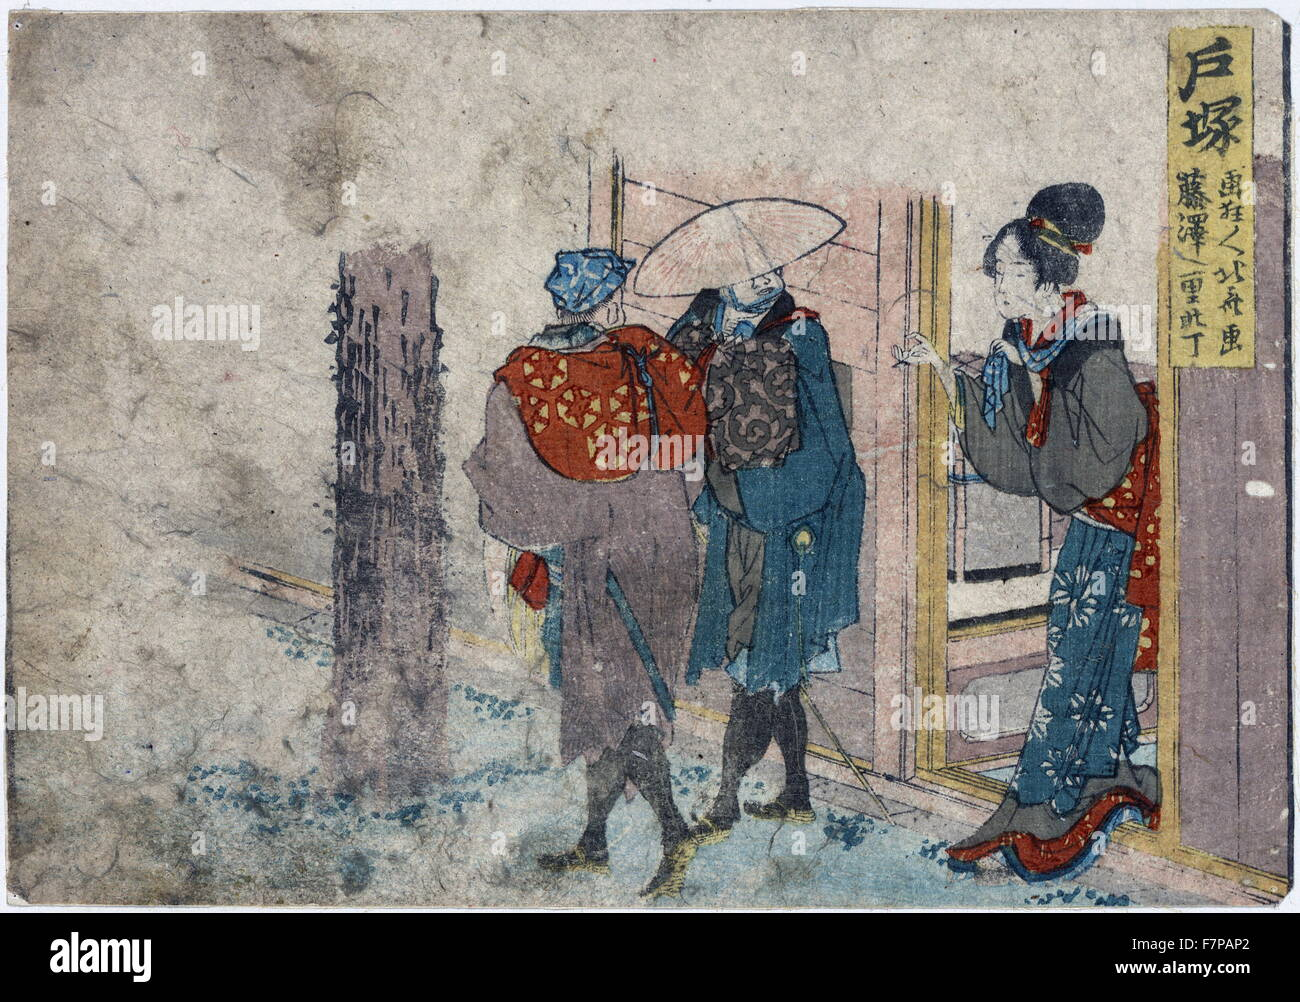 Totsuka by Hokusai Katsushika (1760-1849). Colour woodcut print of a woman soliciting two men at he doorway to an - Stock Image